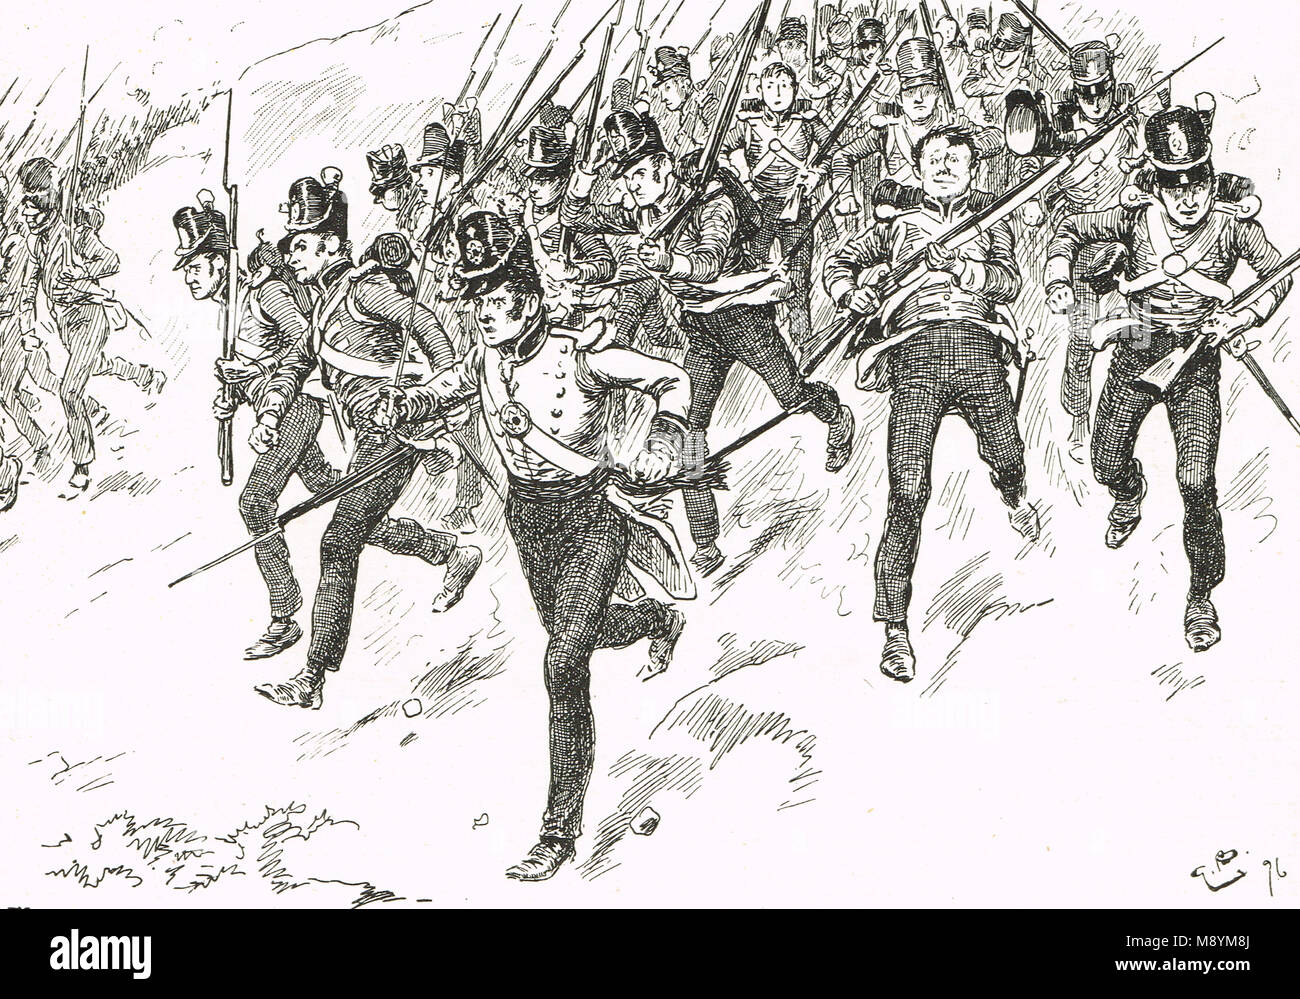 General Dilkes brigade at The Battle of Barrosa, 5 March 1811 - Stock Image